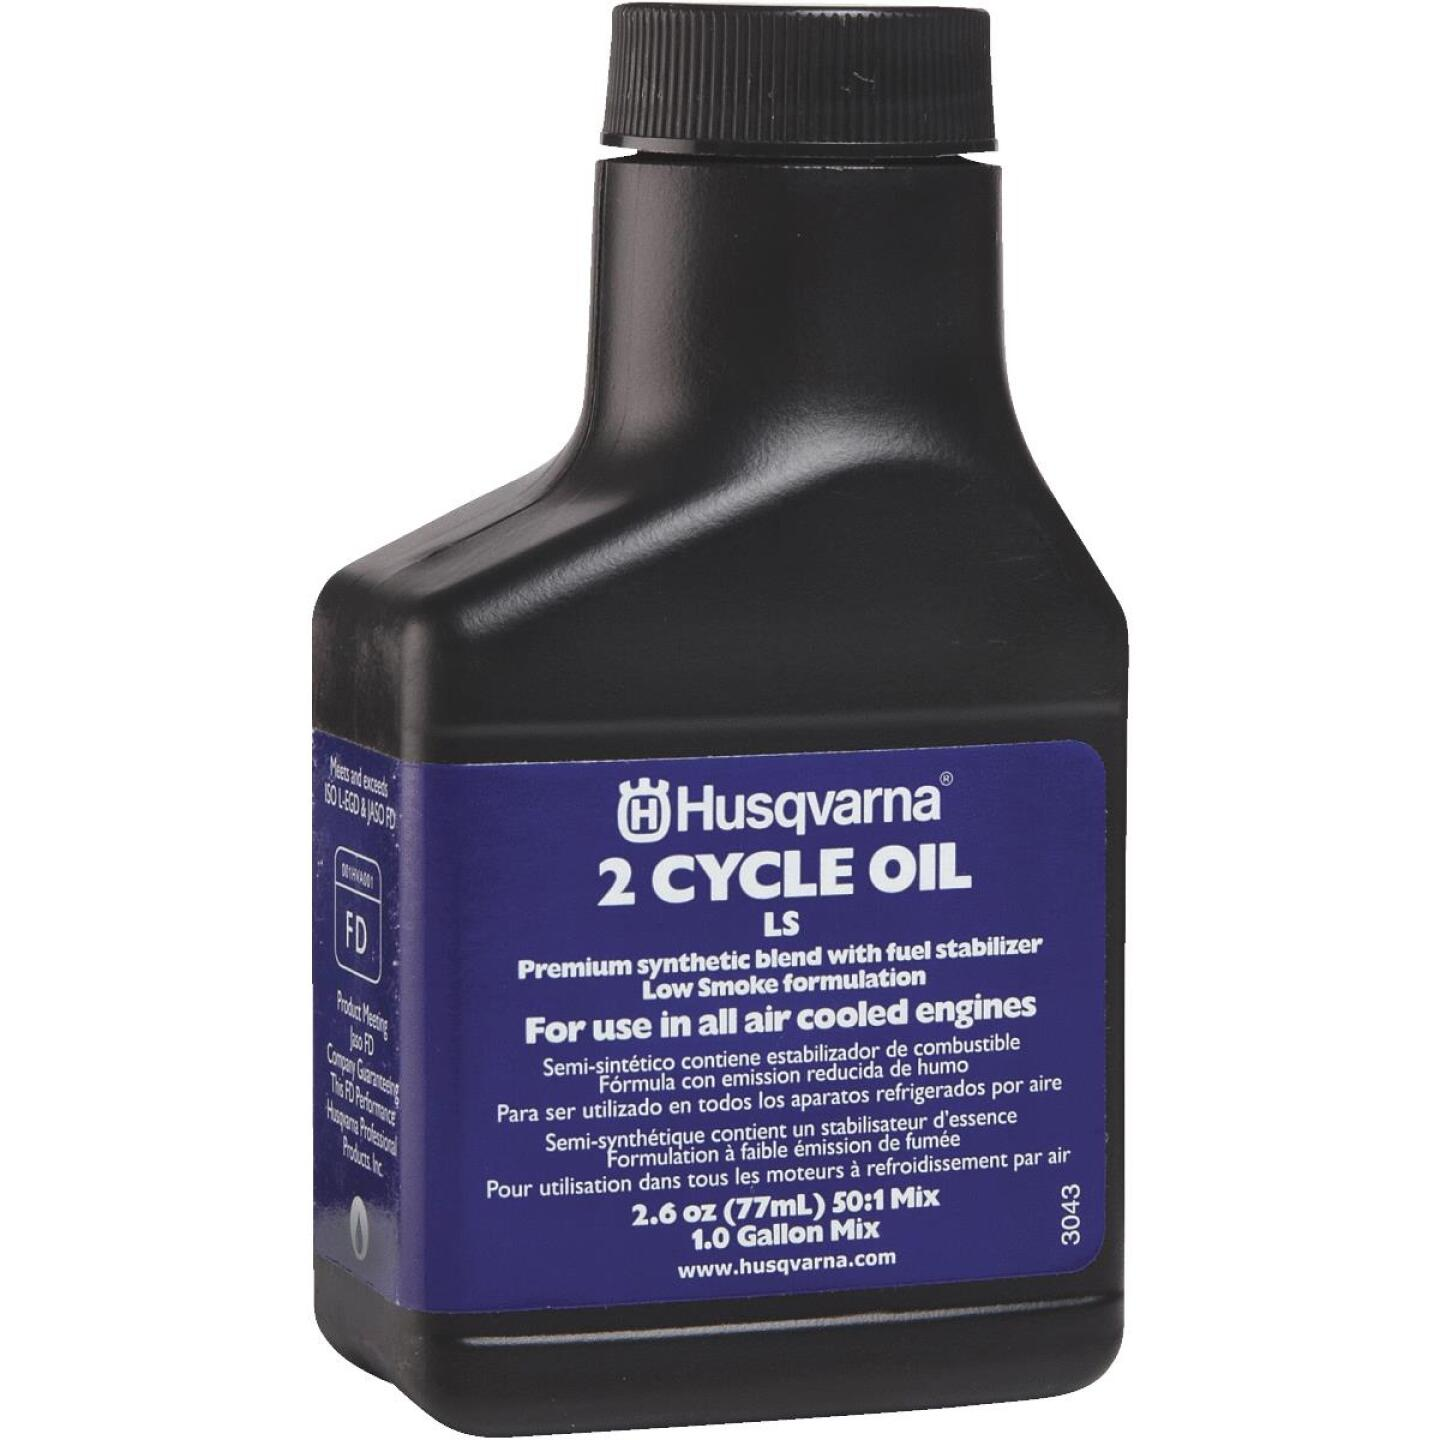 Husqvarna 2.6 Oz. Synthetic Blend 2-Cycle Motor Oil Image 2